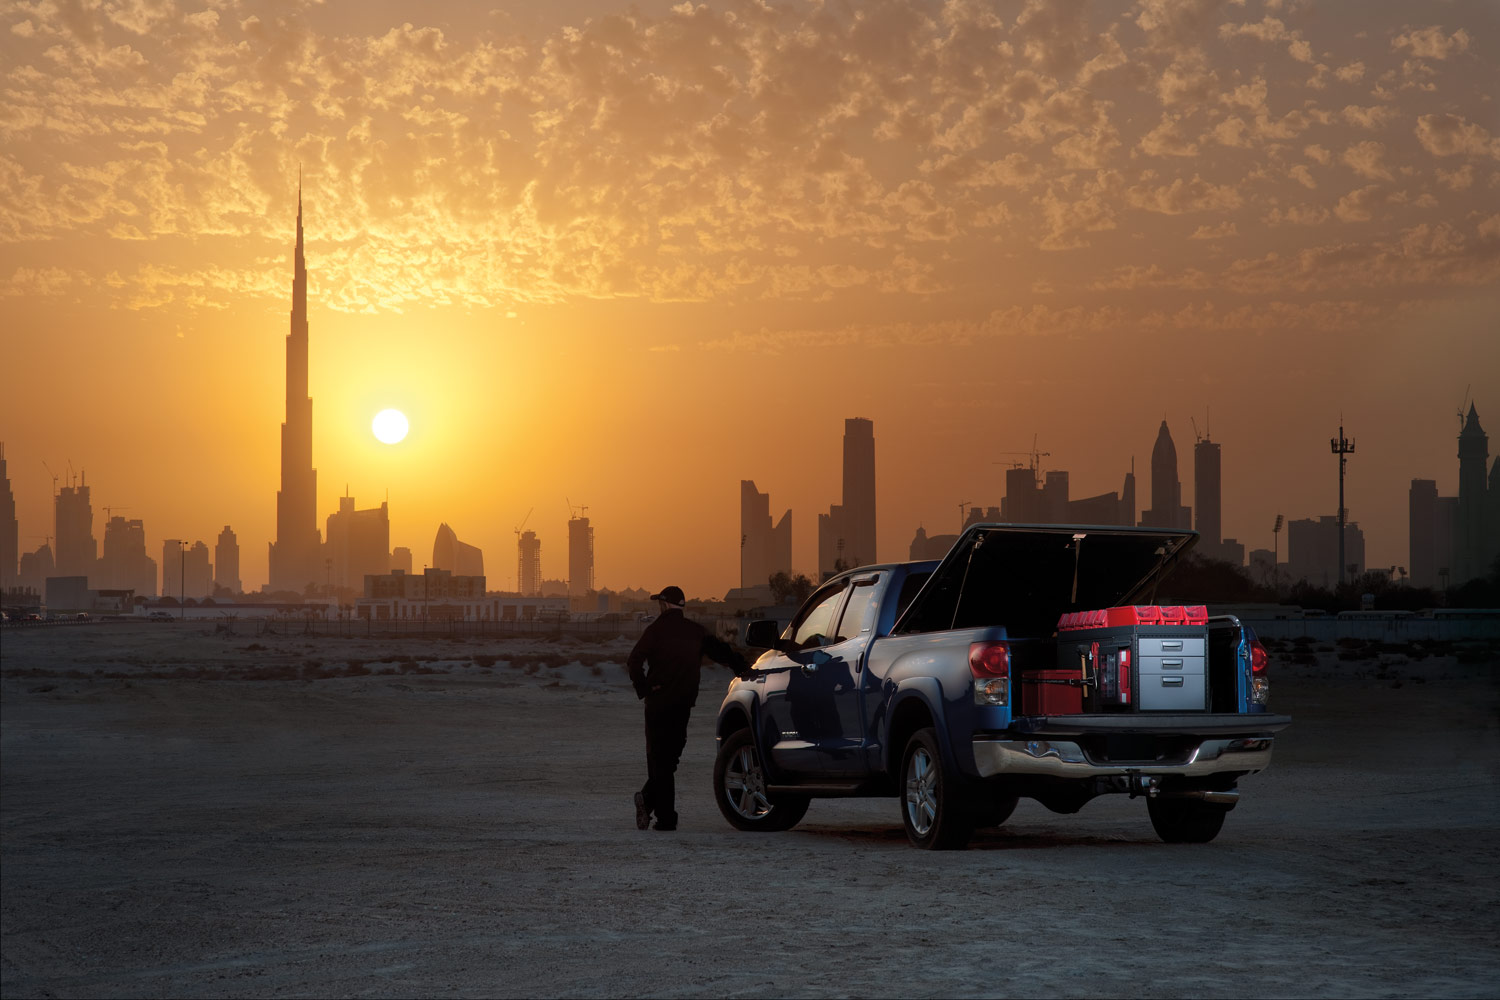 Worker's blue pickup truck with modul-system racking in a desert facing a sunset